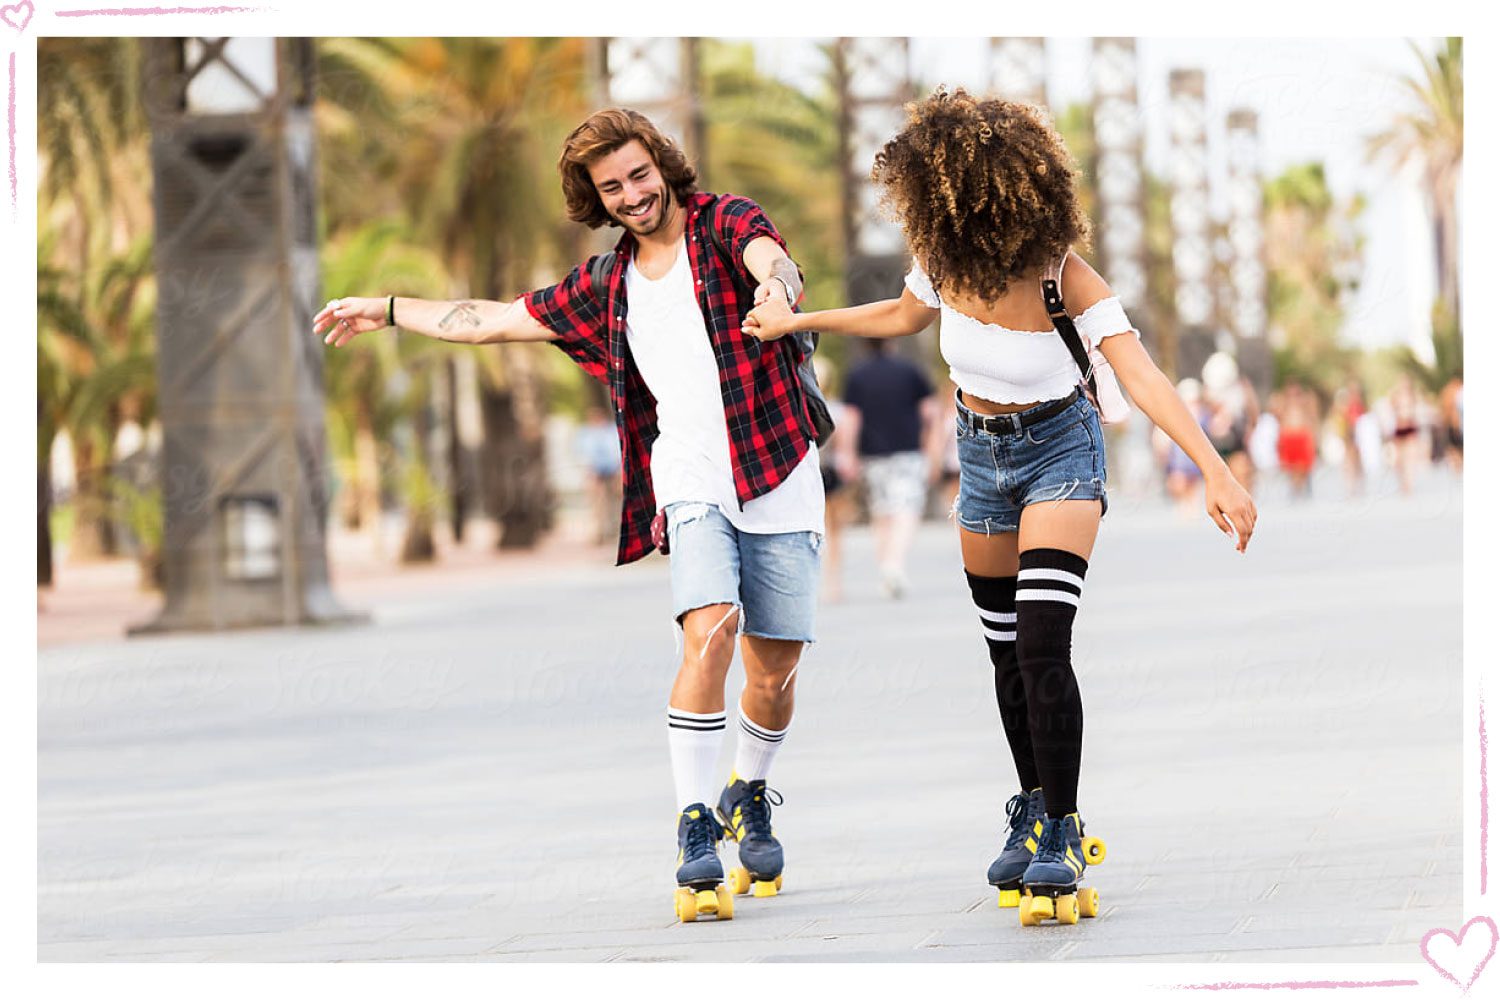 how to surprise your girlfriend roller skating